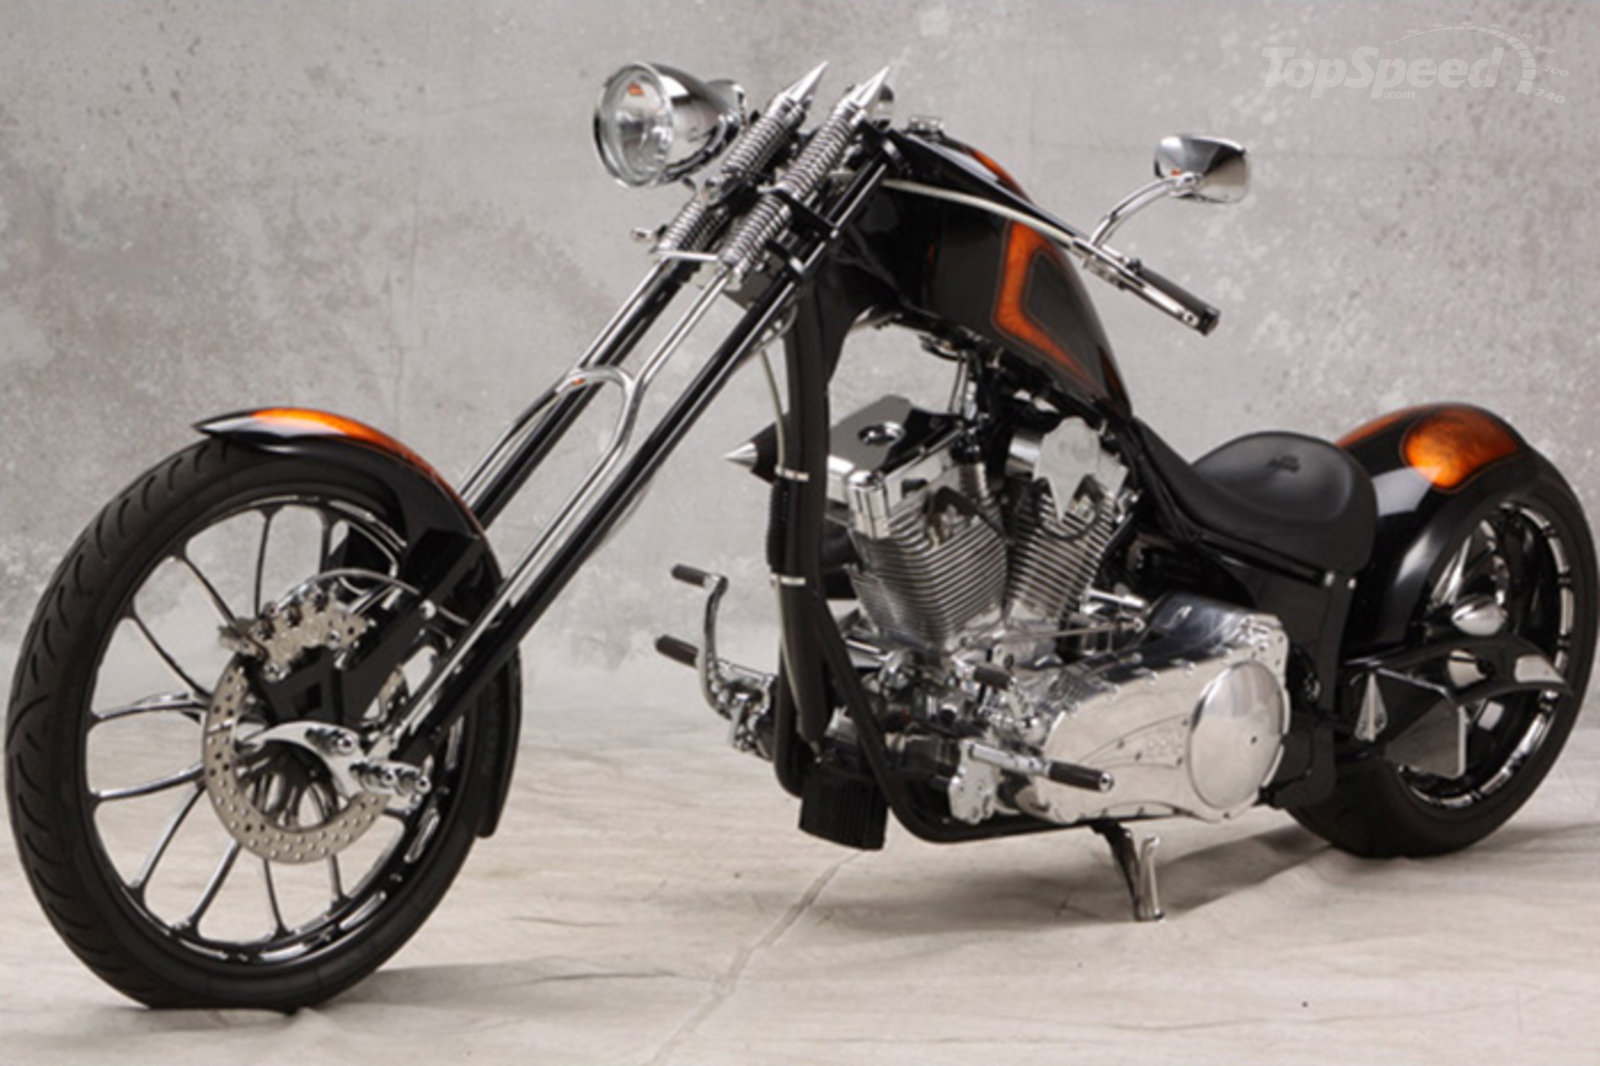 Big Bear Choppers Motorcycles for sale   Big Bear Choppers